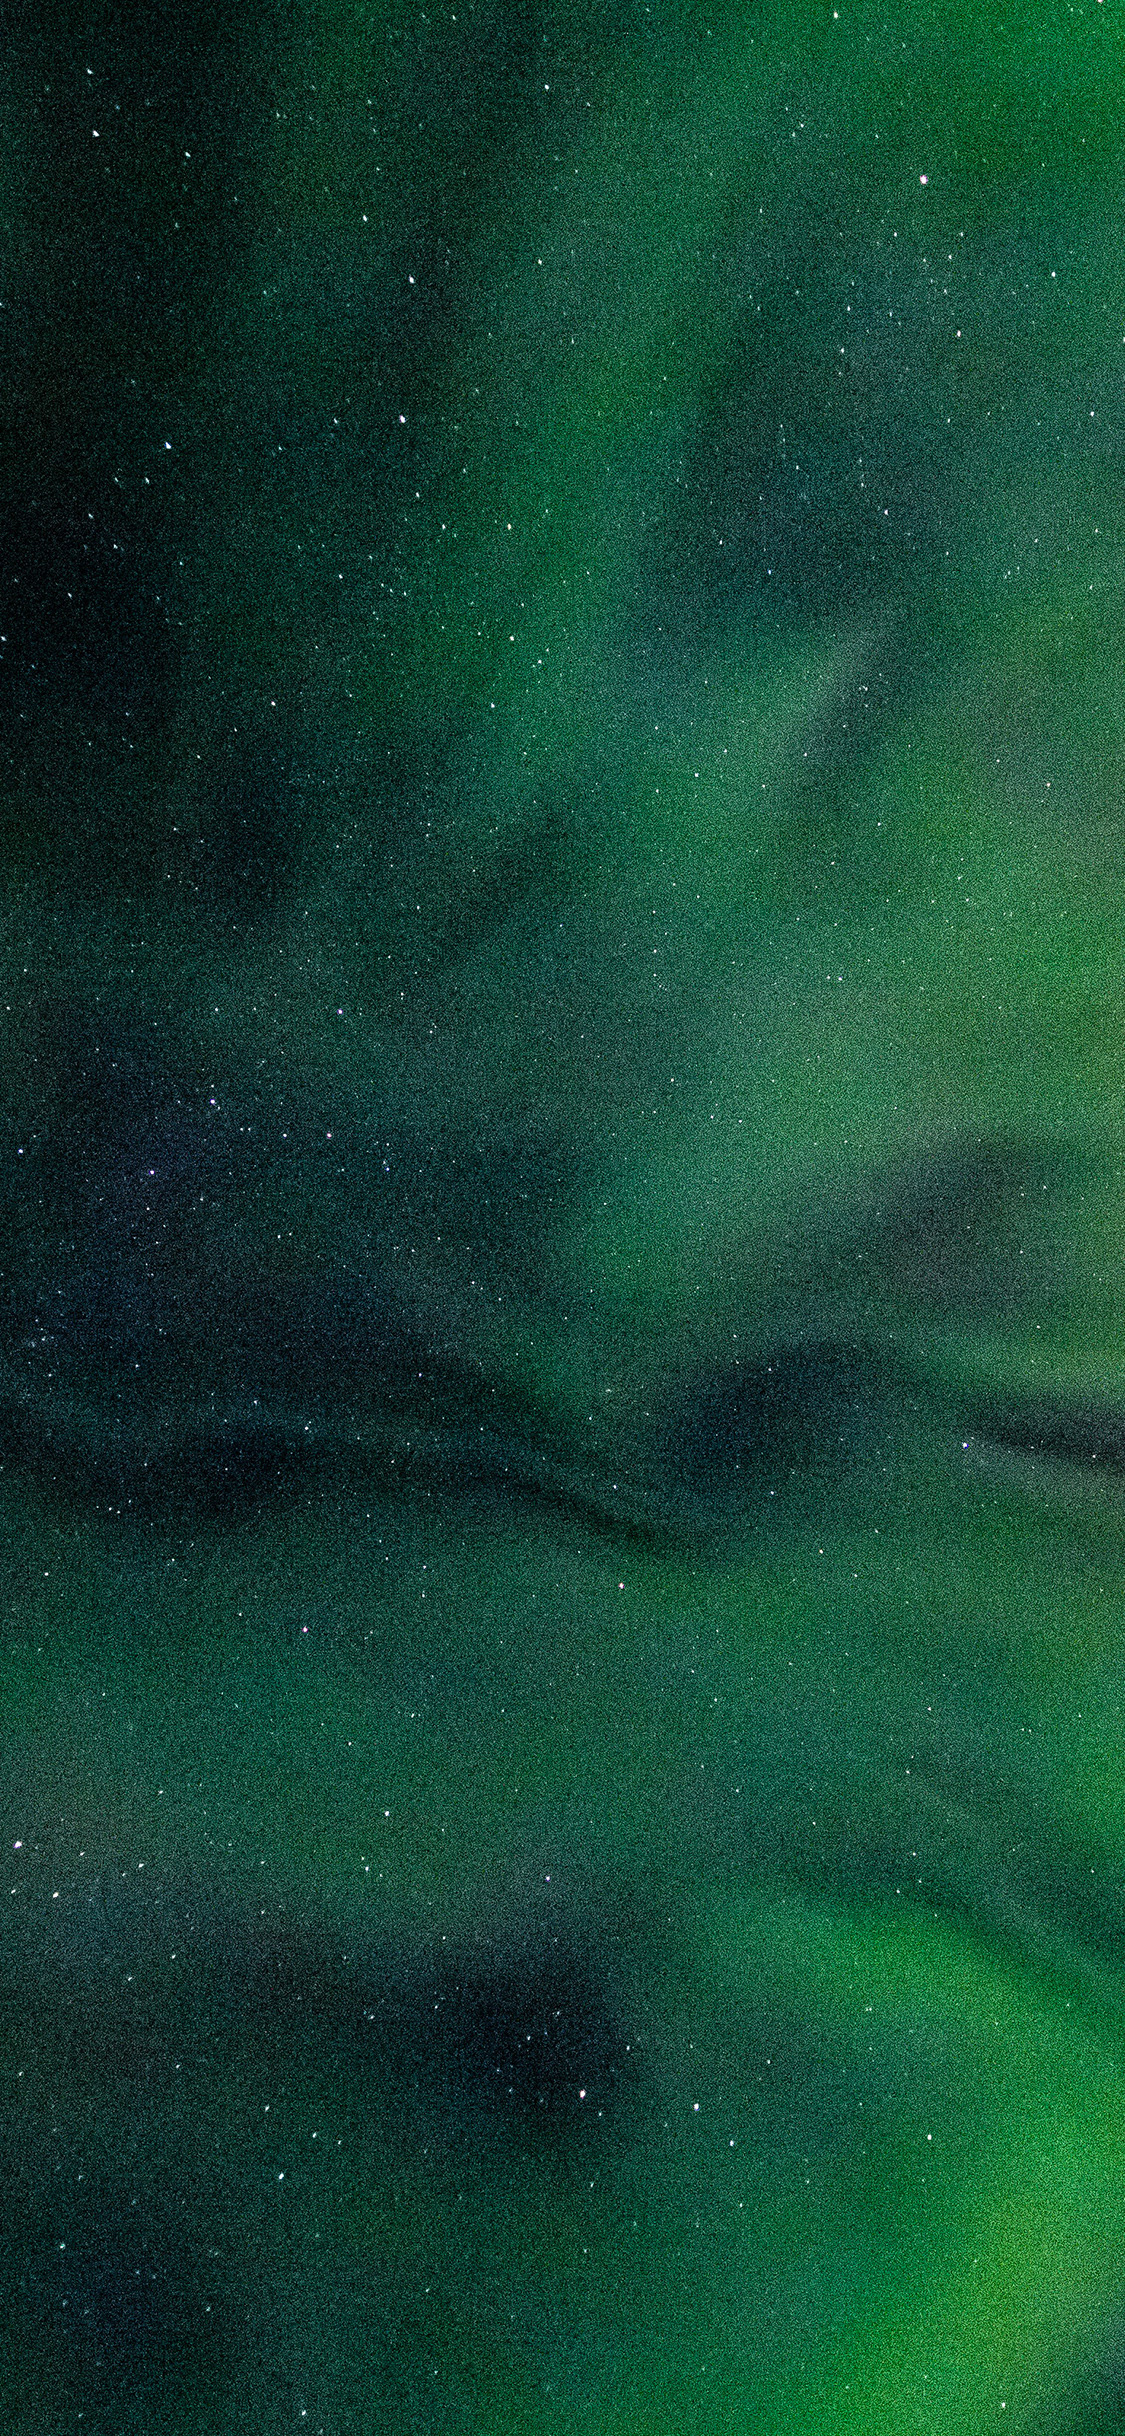 iPhone wallpaper aurora 1 Aurora Borealis : 3